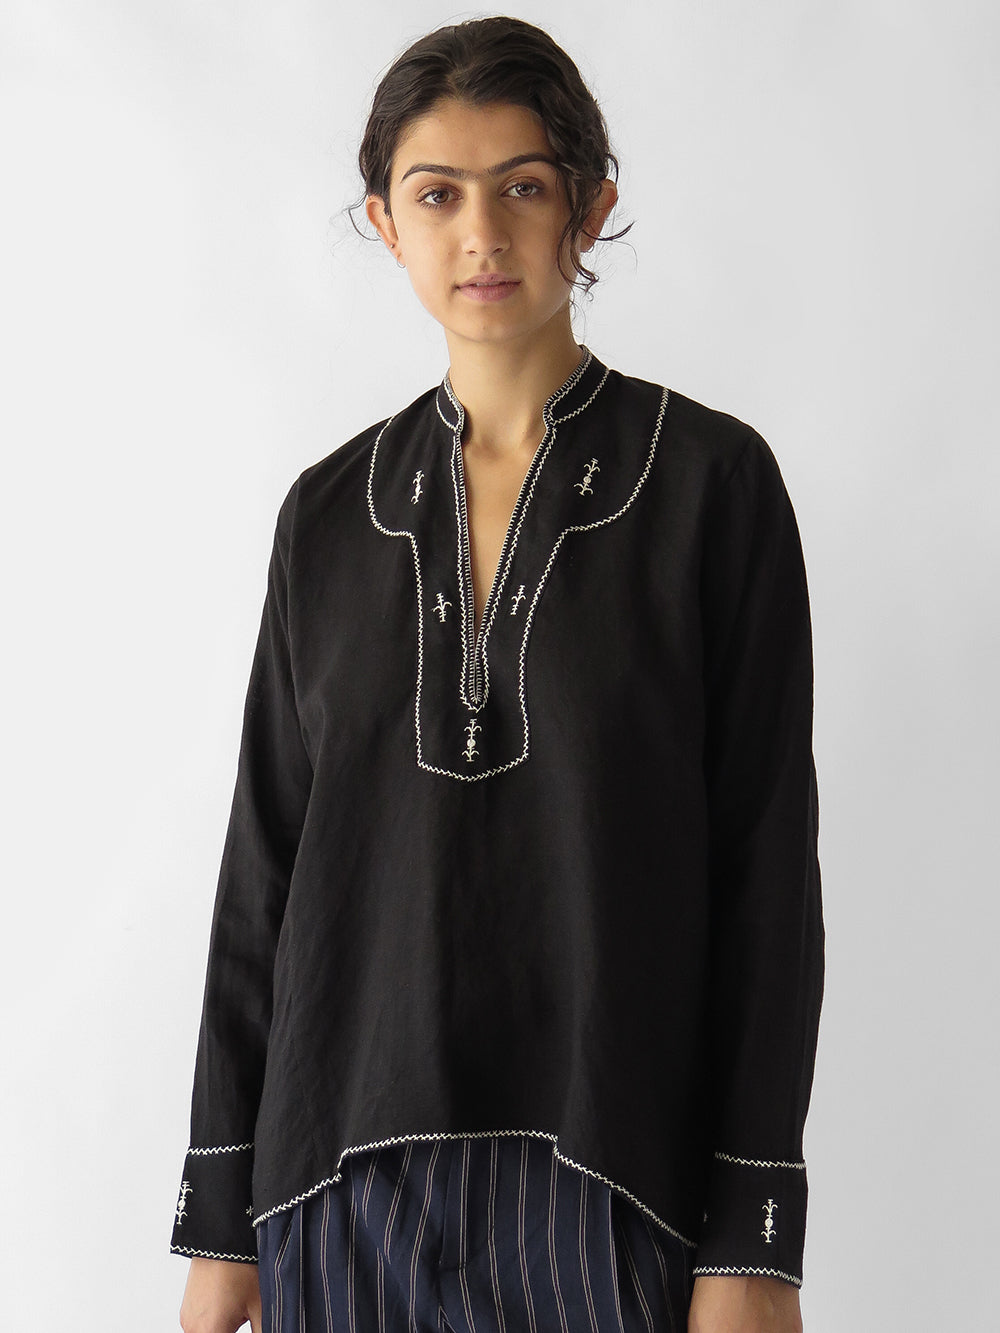 aarika blouse in black